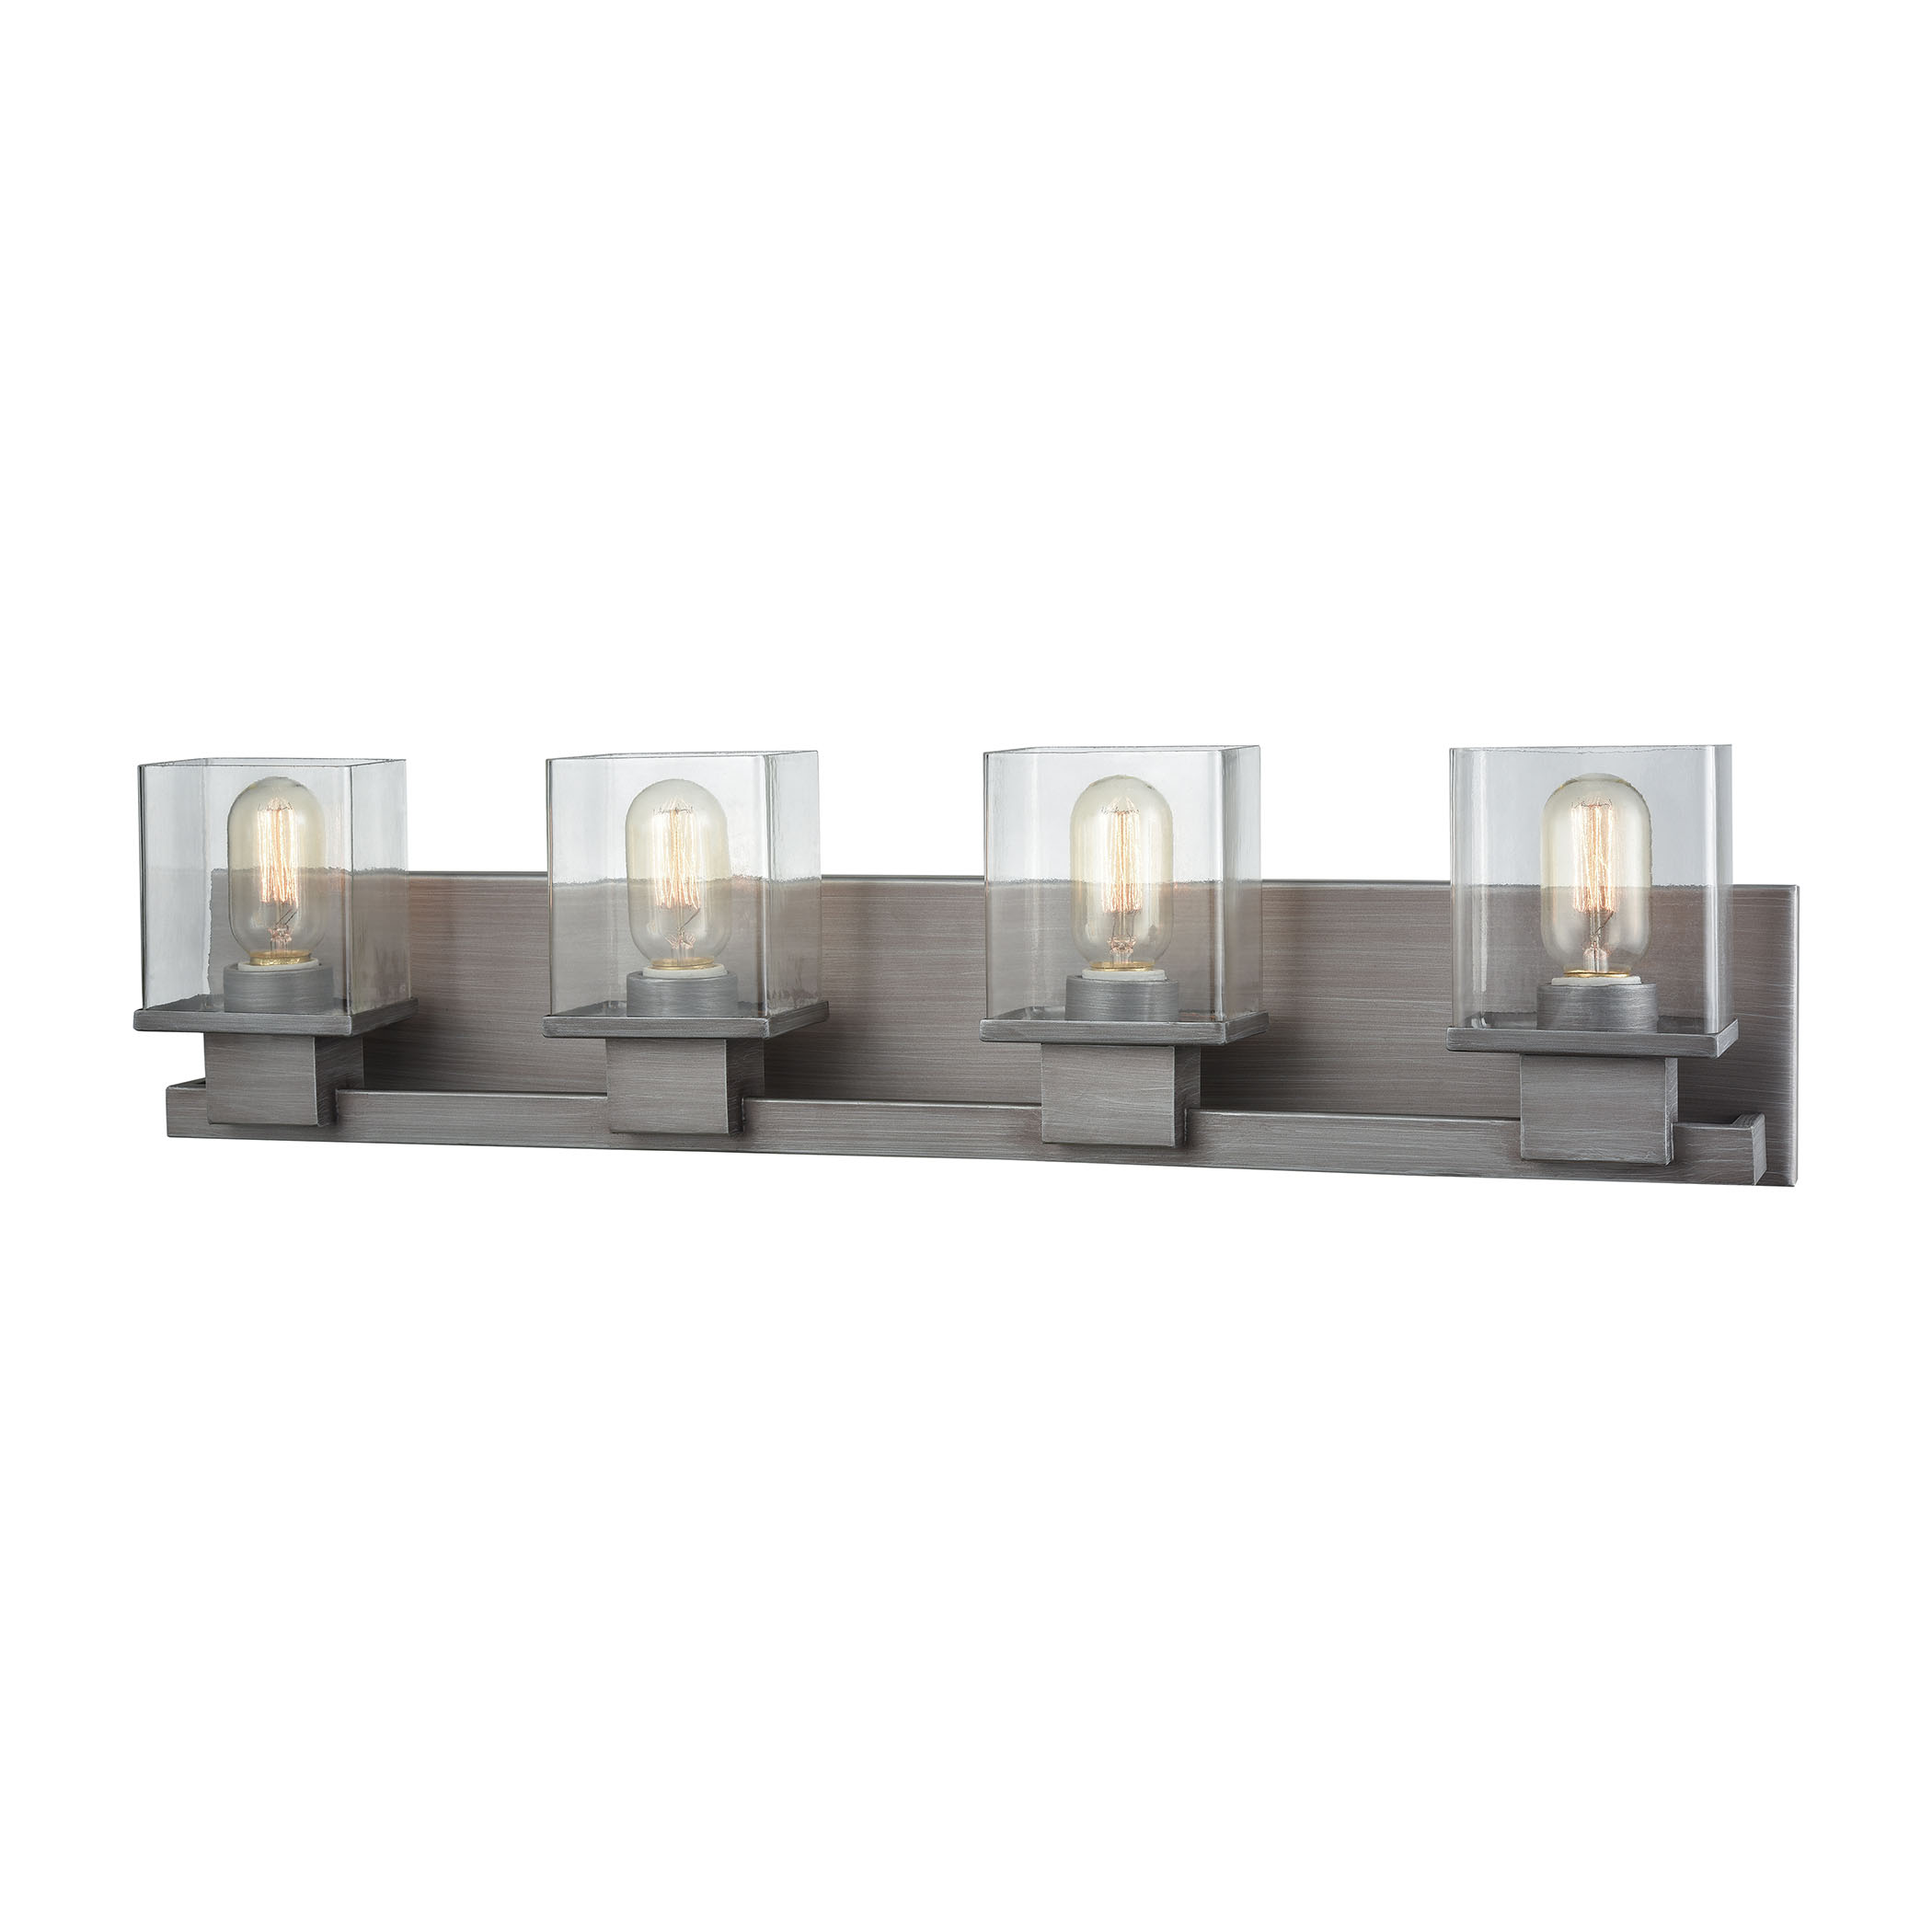 Hotelier 4 Light Vanity in Weathered Zinc with Clear Glass